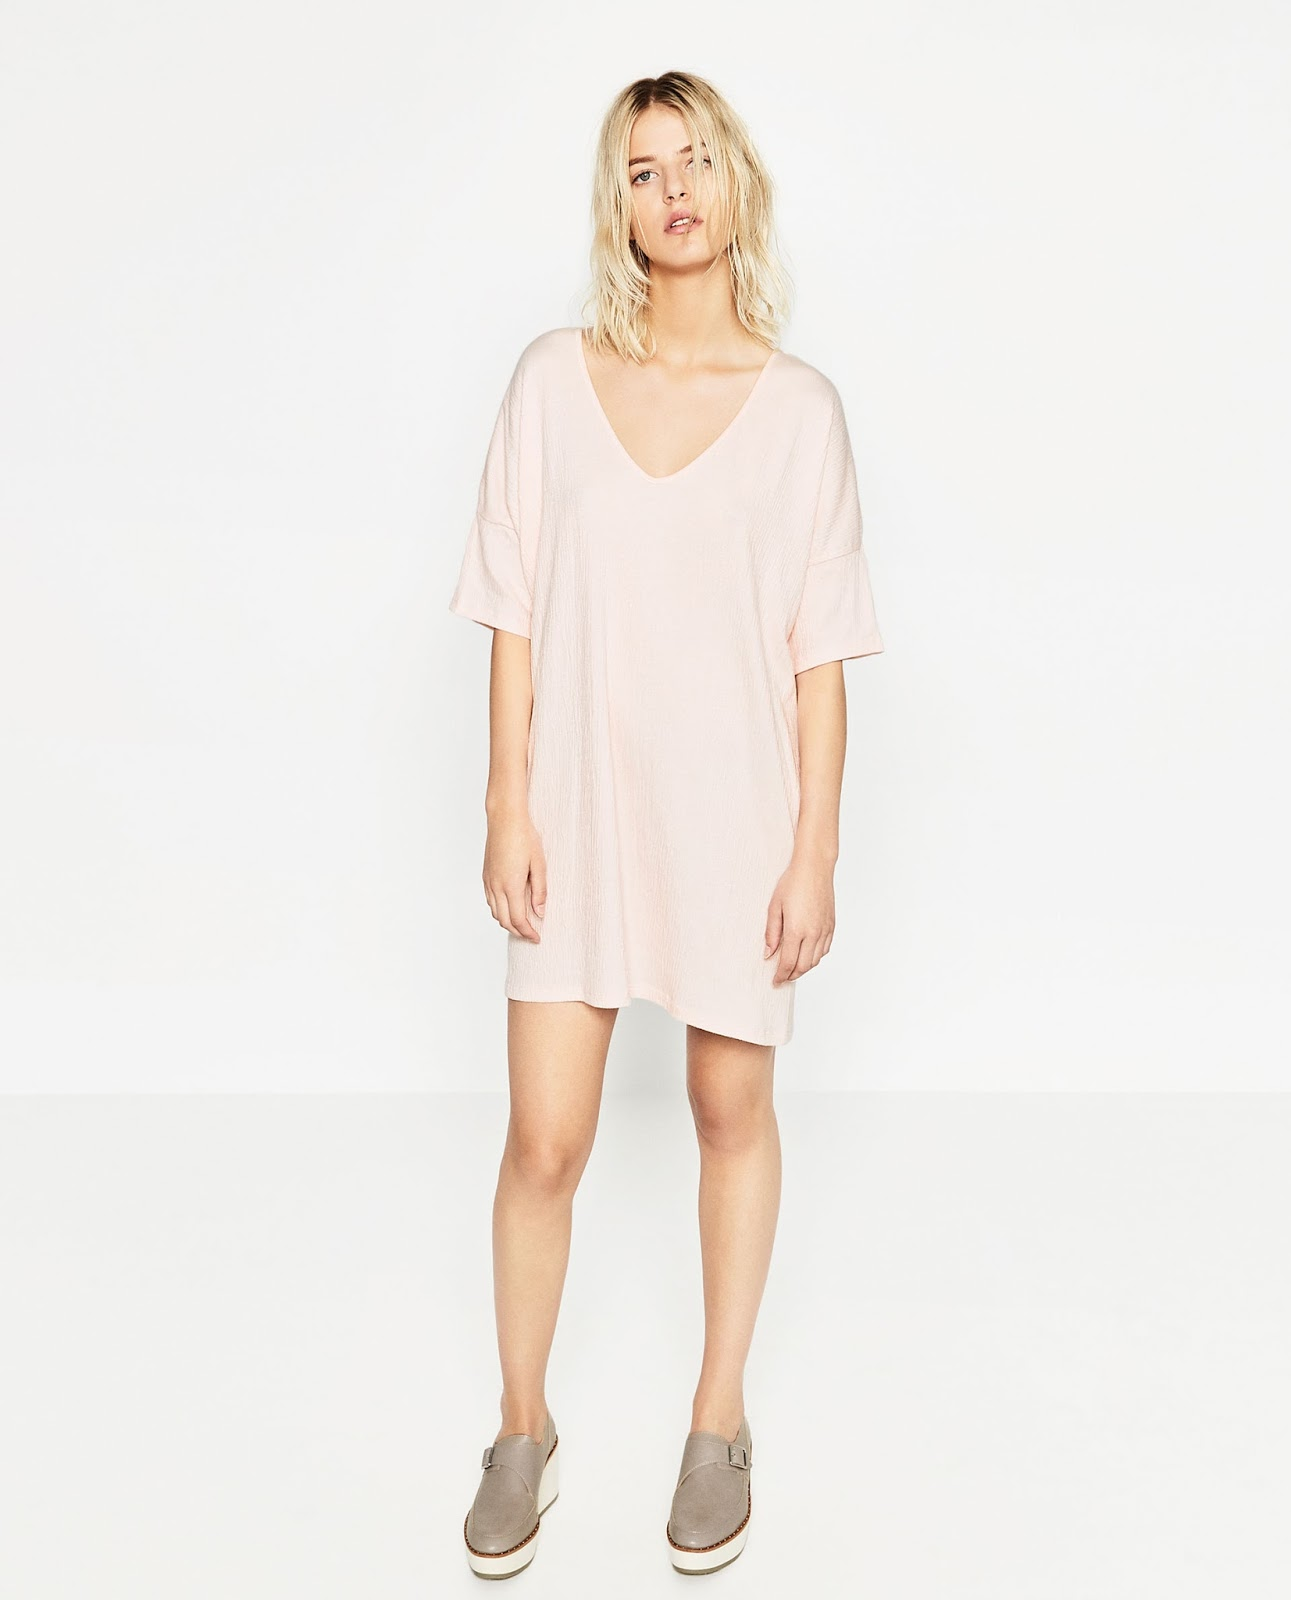 Zara blush dress